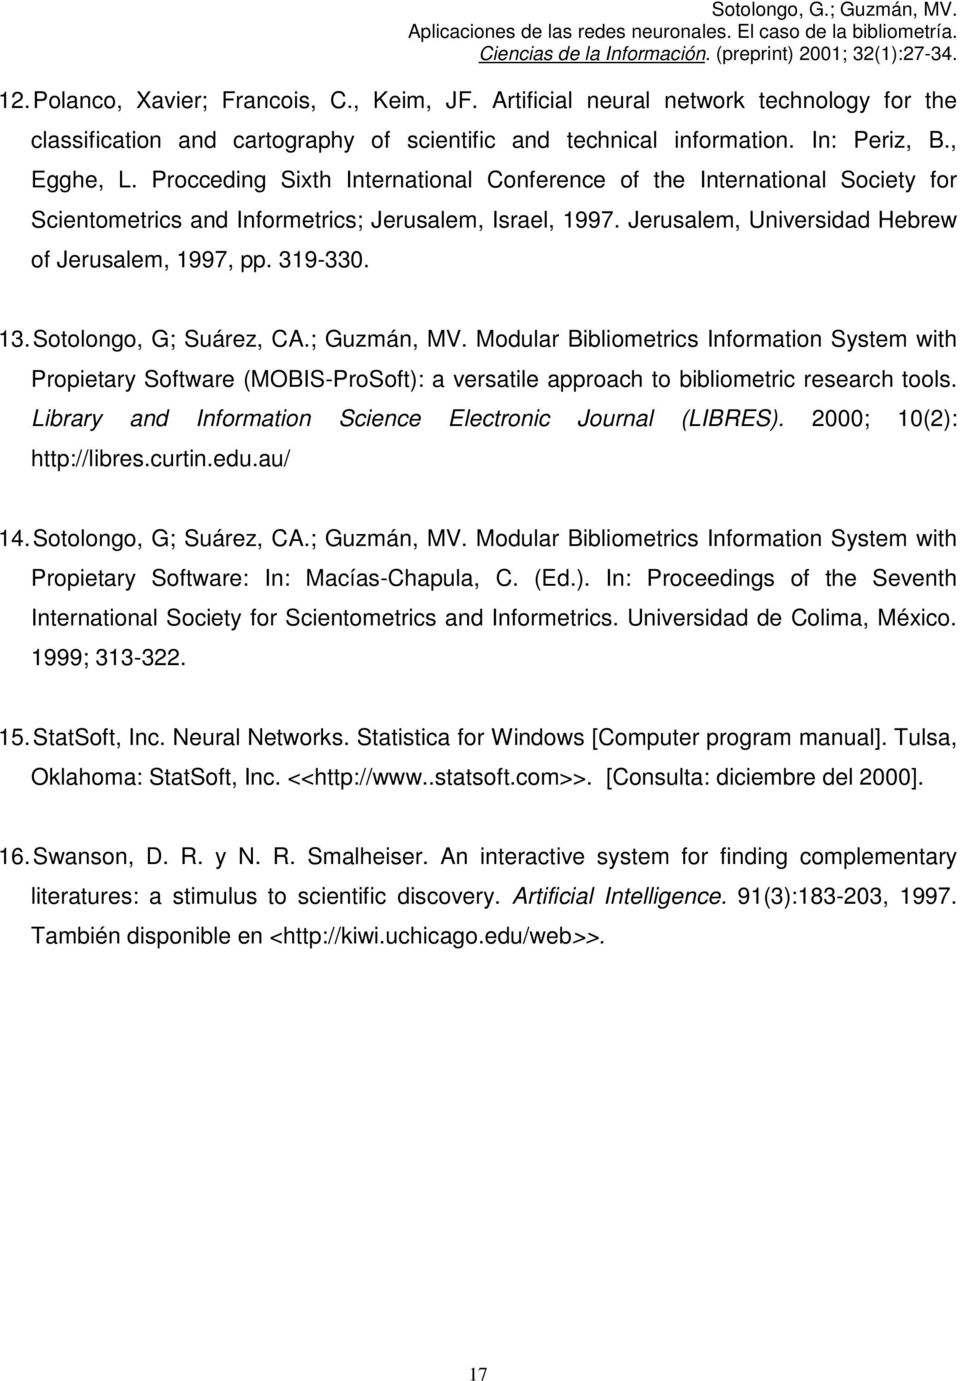 Sotolongo, G; Suárez, CA.; Guzmán, MV. Modular Bibliometrics Information System with Propietary Software (MOBIS-ProSoft): a versatile approach to bibliometric research tools.